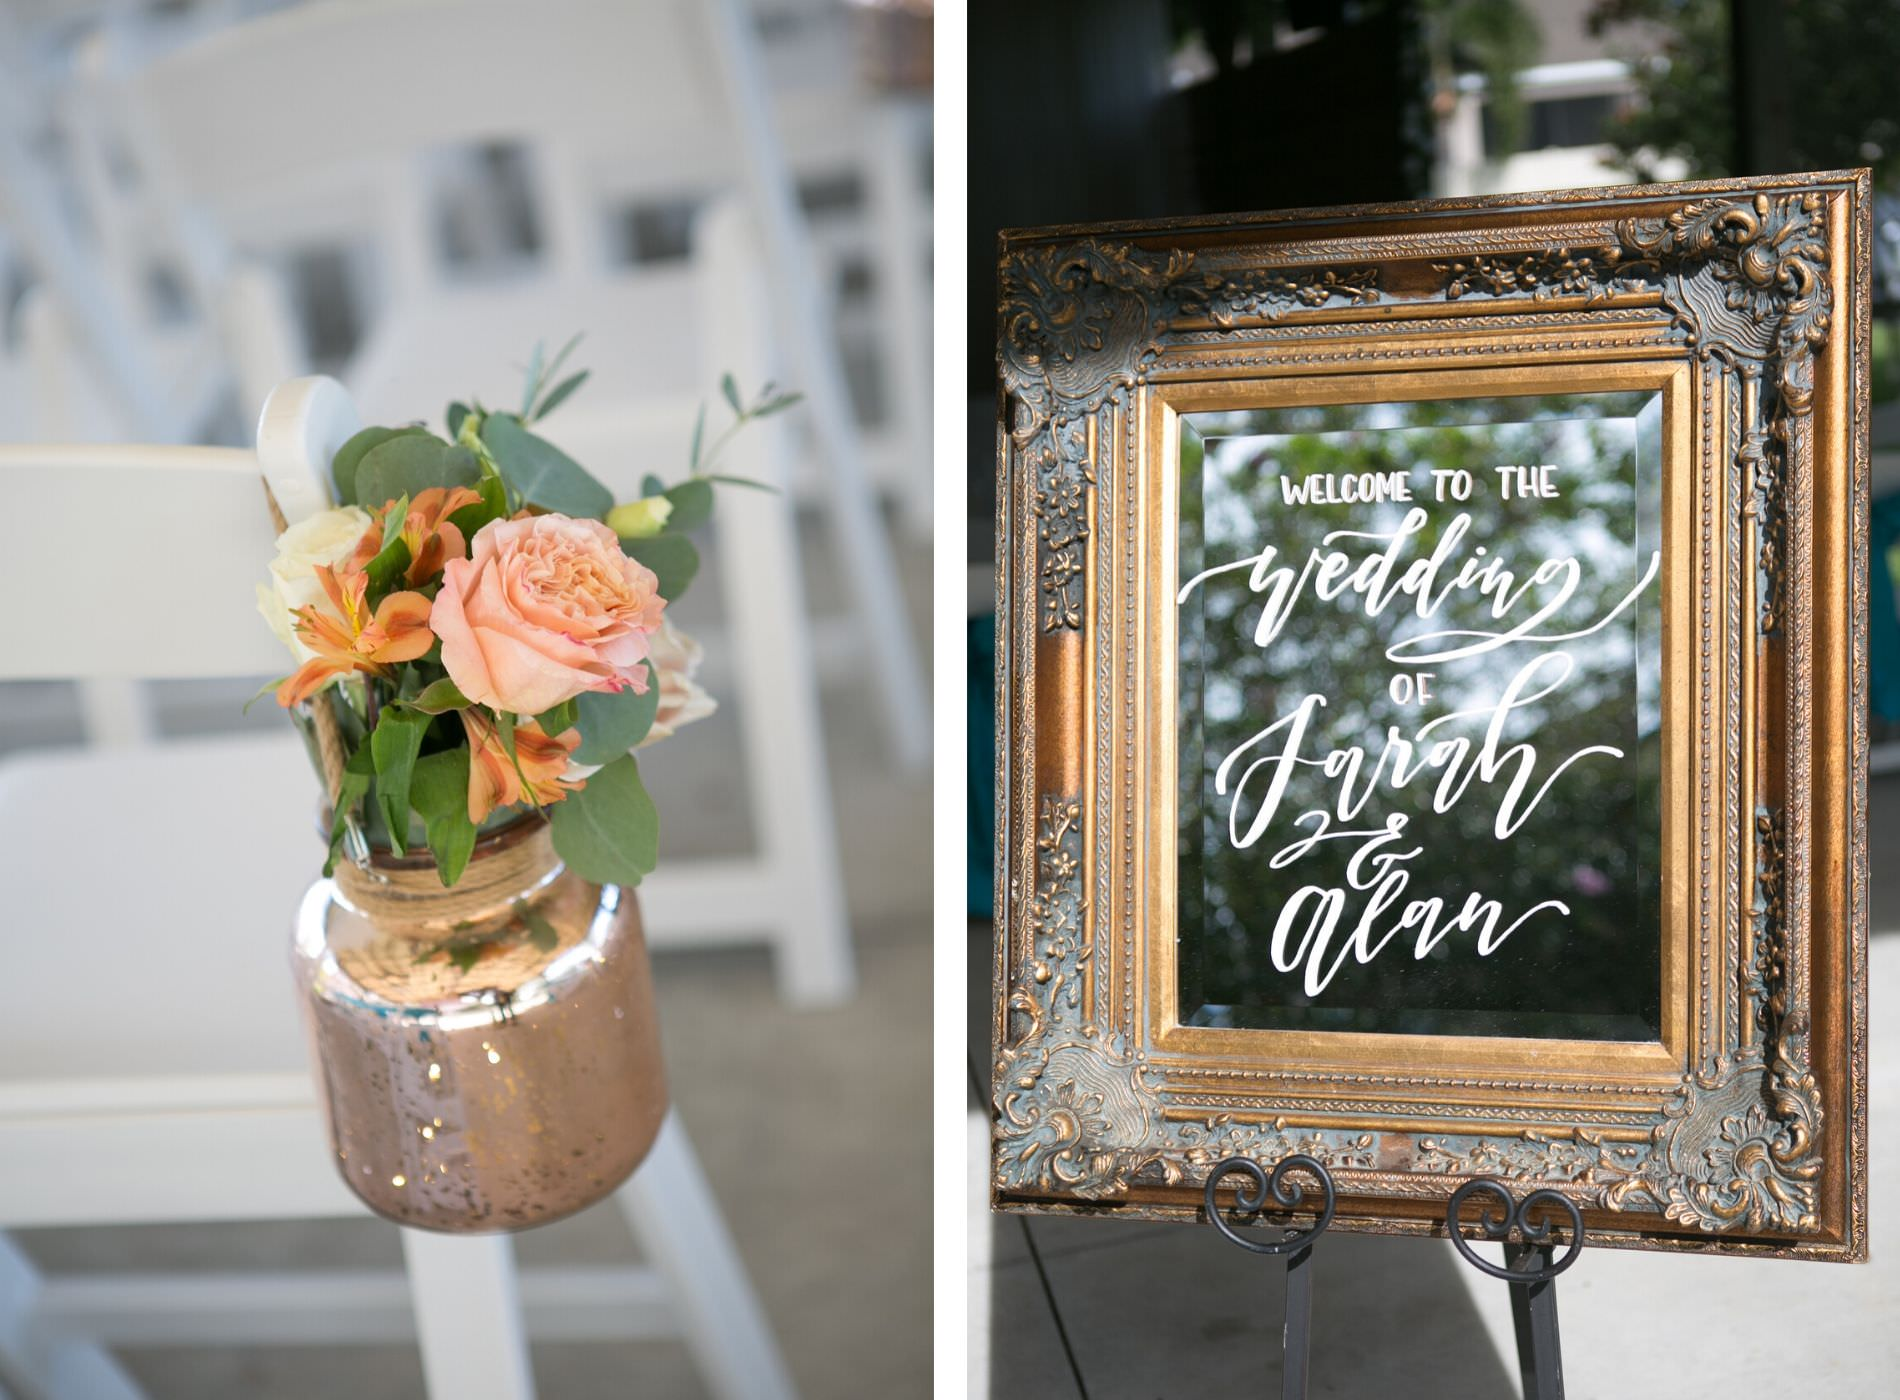 Tampa Wedding Ceremony Decor, Gold Mercury Jar with Pink Rose, Orange and Greenery Floral Arrangement, Antique Gold Fram Mirror Welcome Sign | Wedding Photographer Carrie Wildes Photography